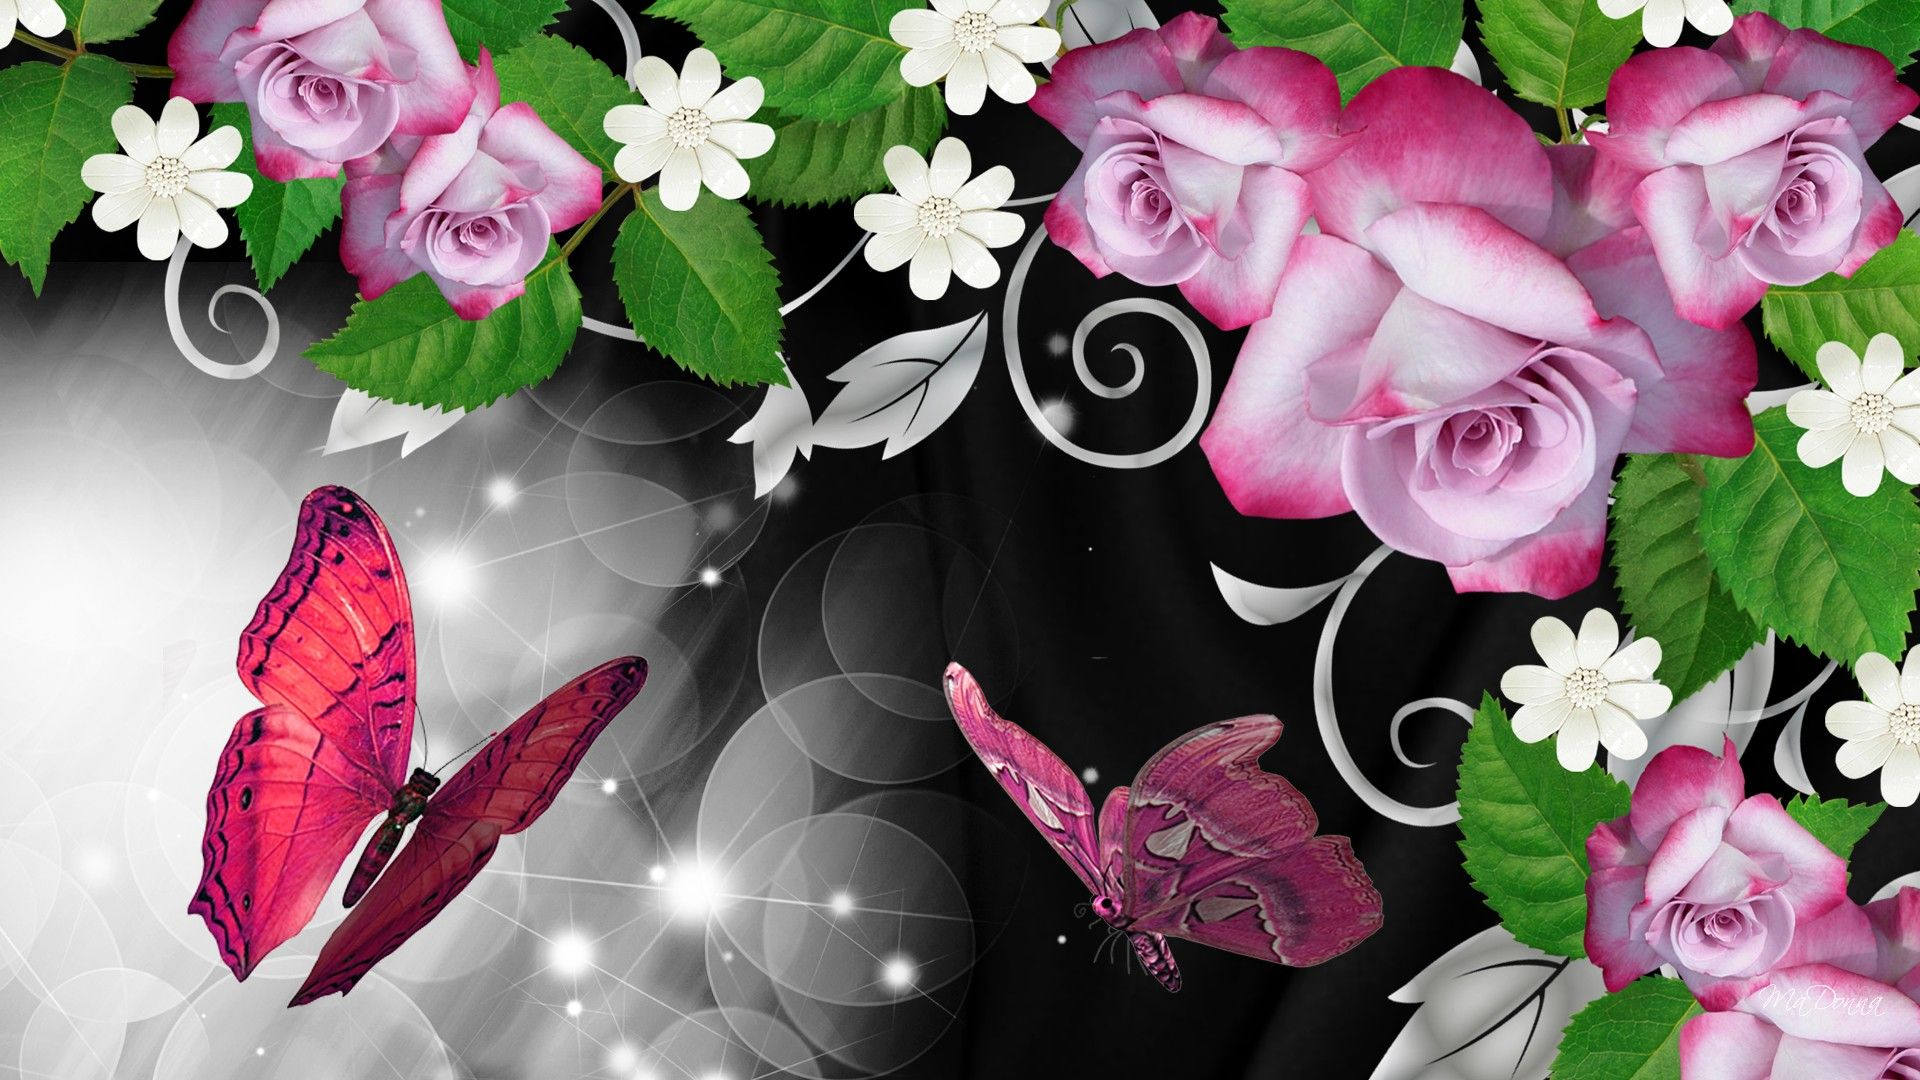 Pink Rose Butterfly HD Pink Roses Butterfly Shine Wallpaper 1920x1080